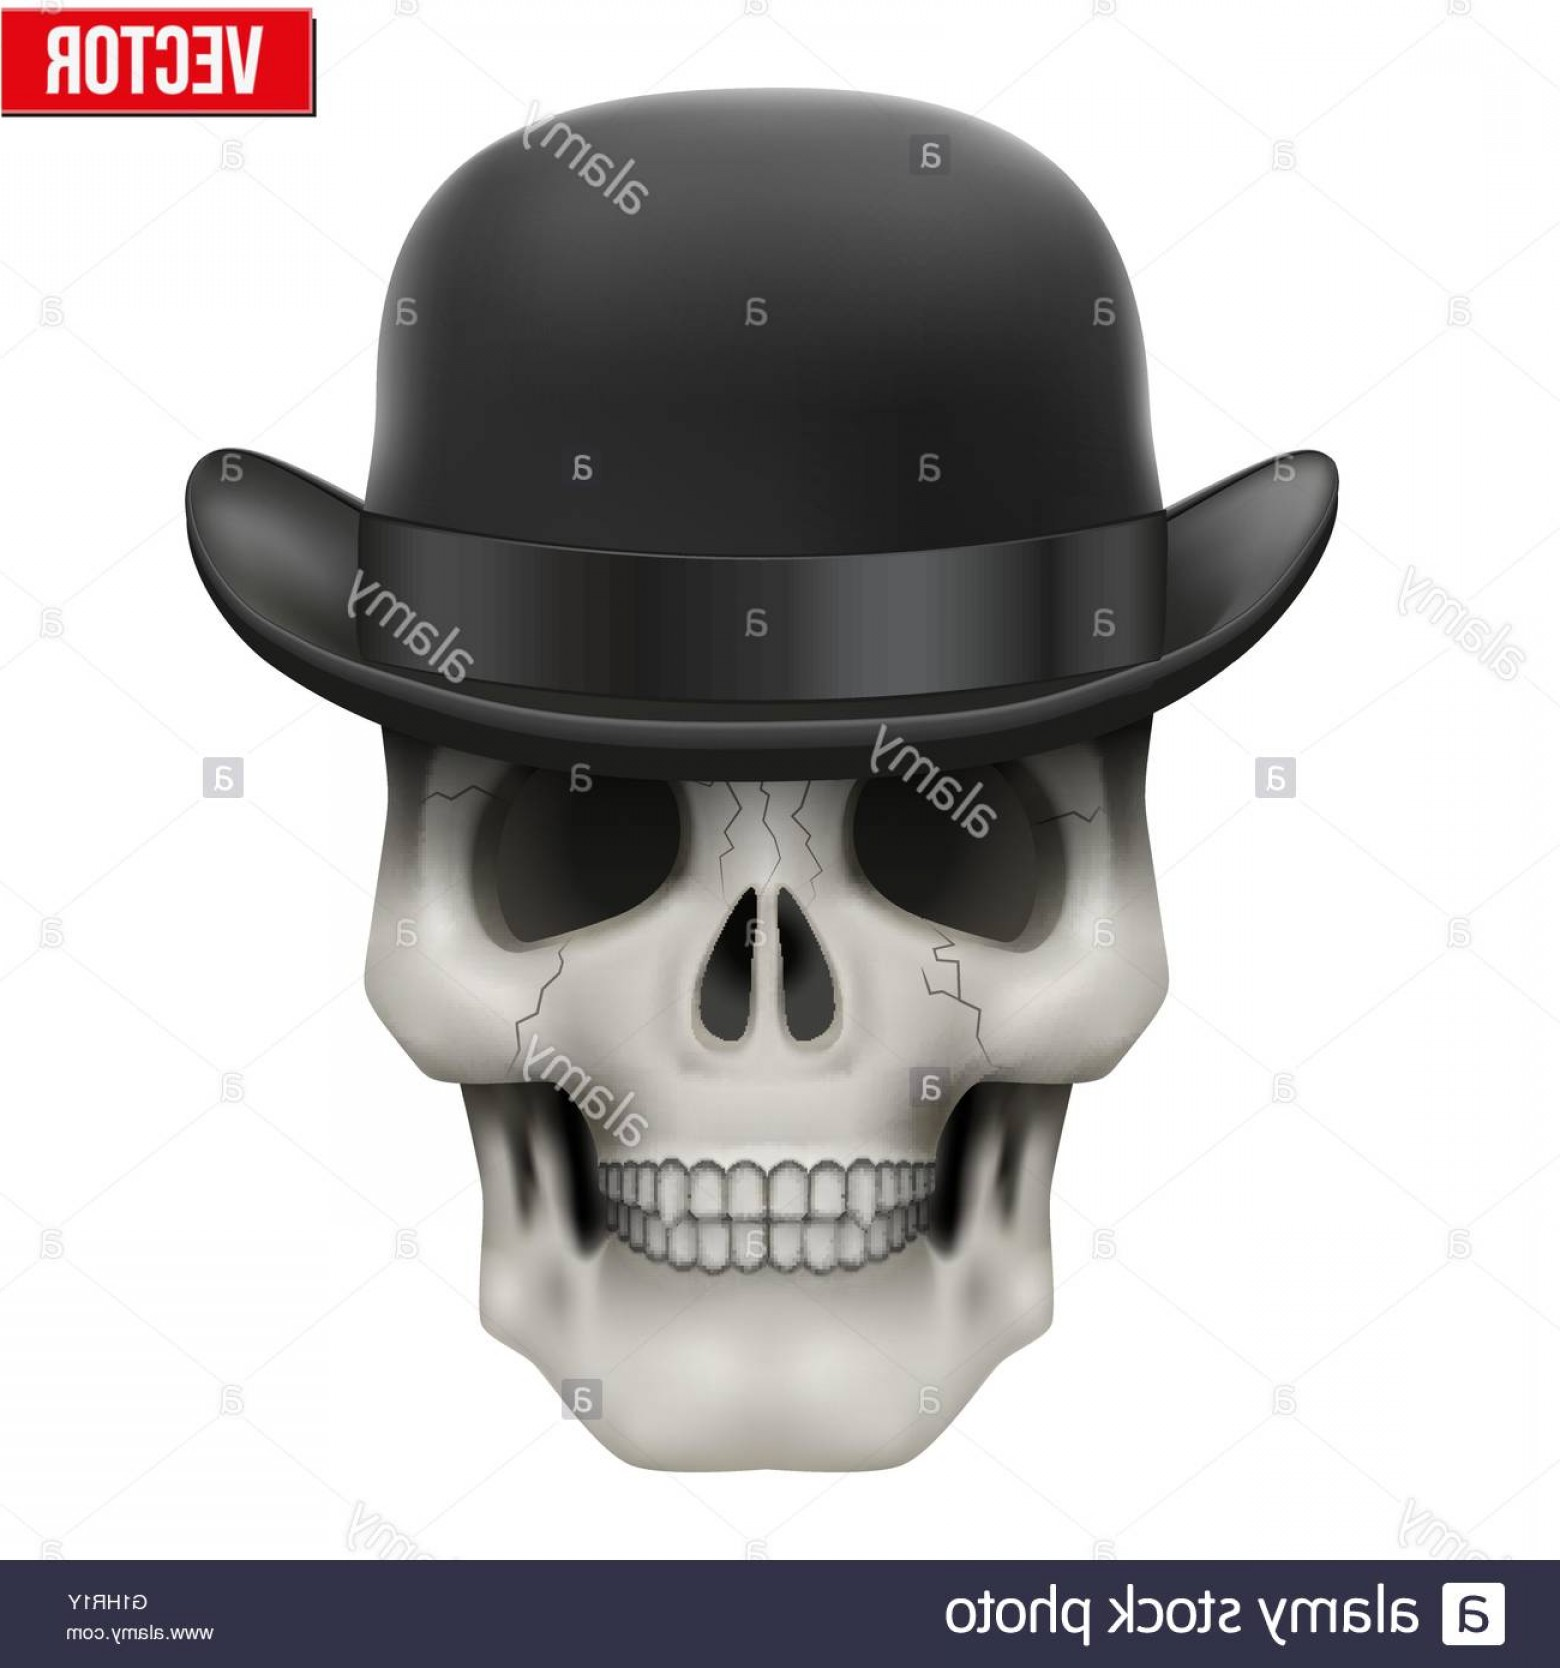 Bowler Hat Vector: Stock Photo Human Skull With Black Bowler Hat